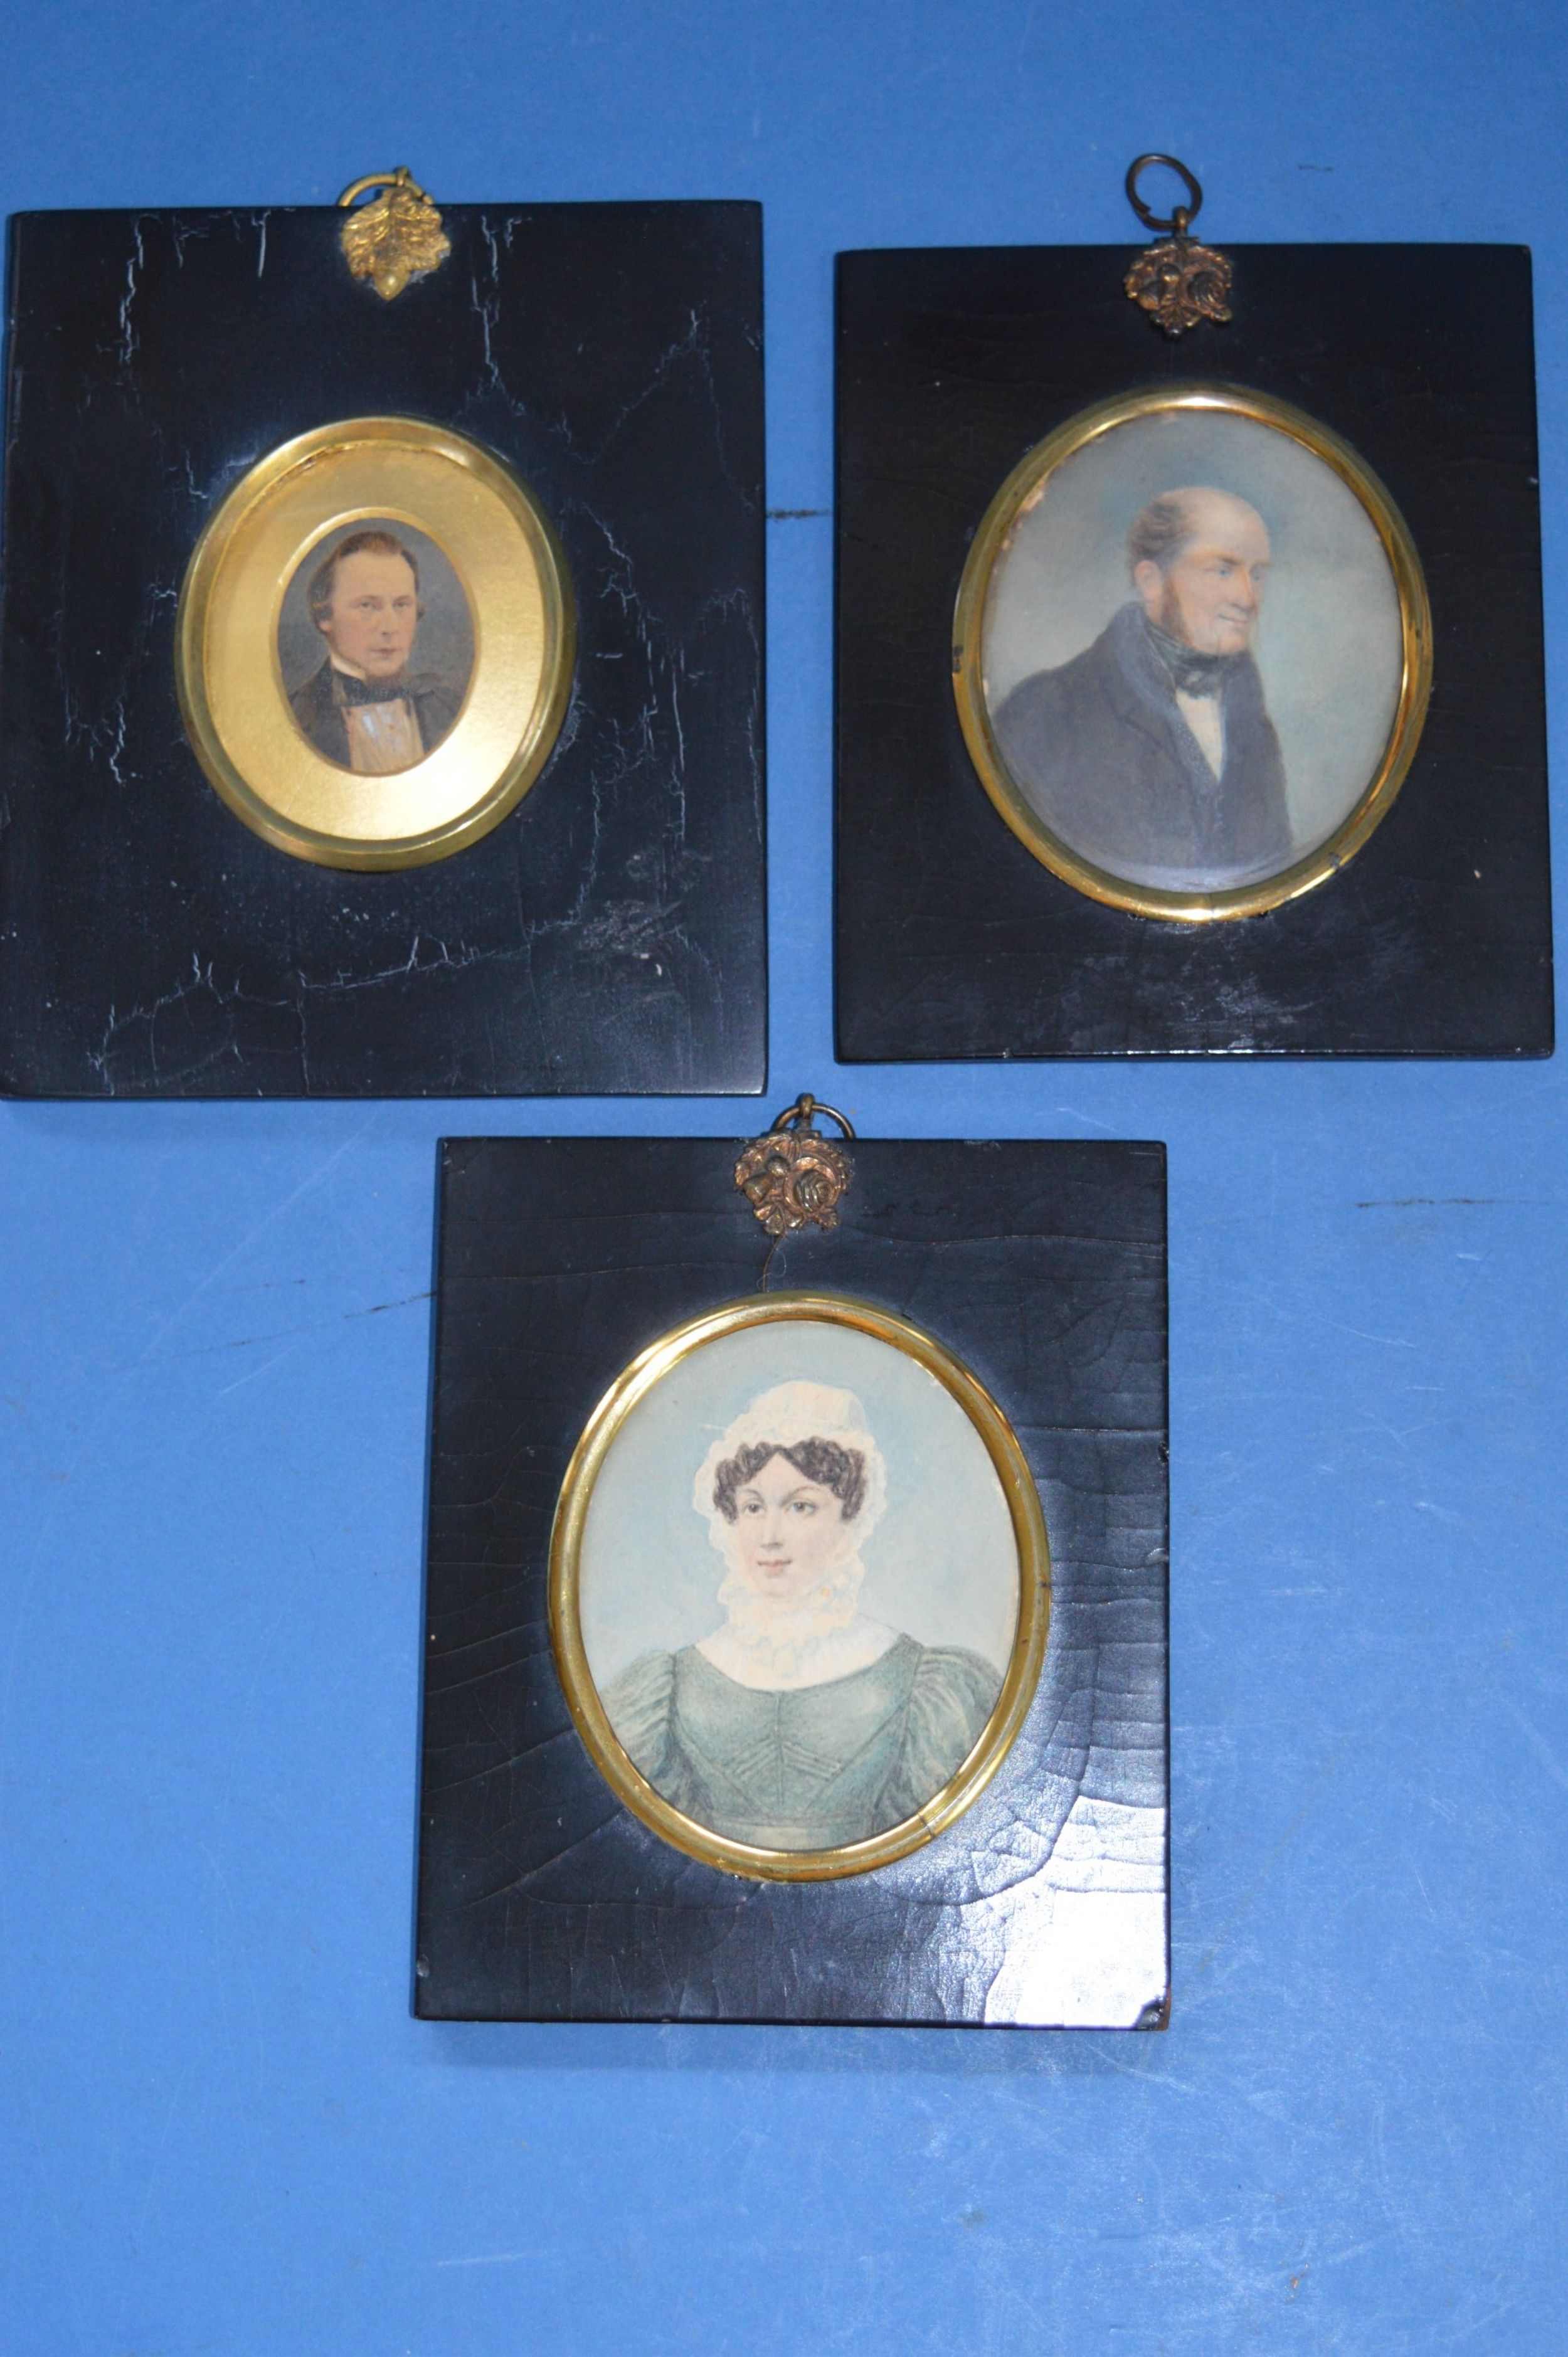 3 x 19th century framed oval portrait miniatures c 1850annotated to the rear with date of purchase 1950